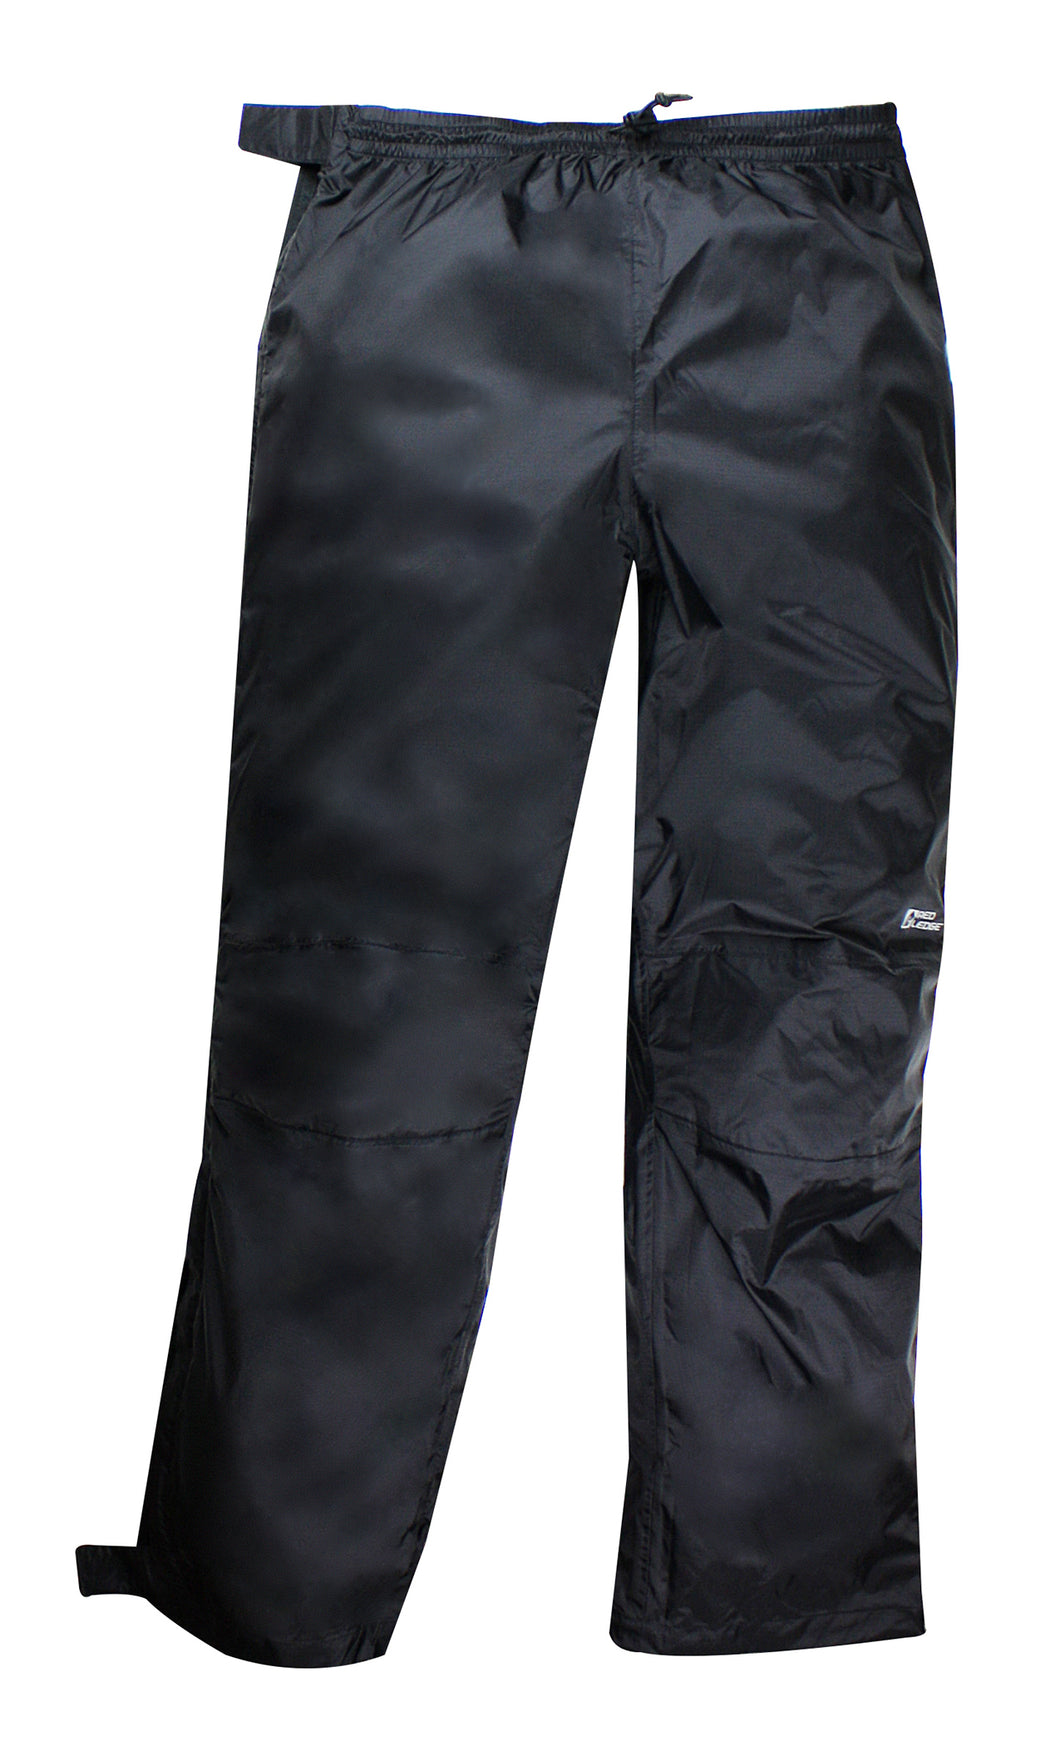 Men's and Women's Thunderlight Fullzip Pant